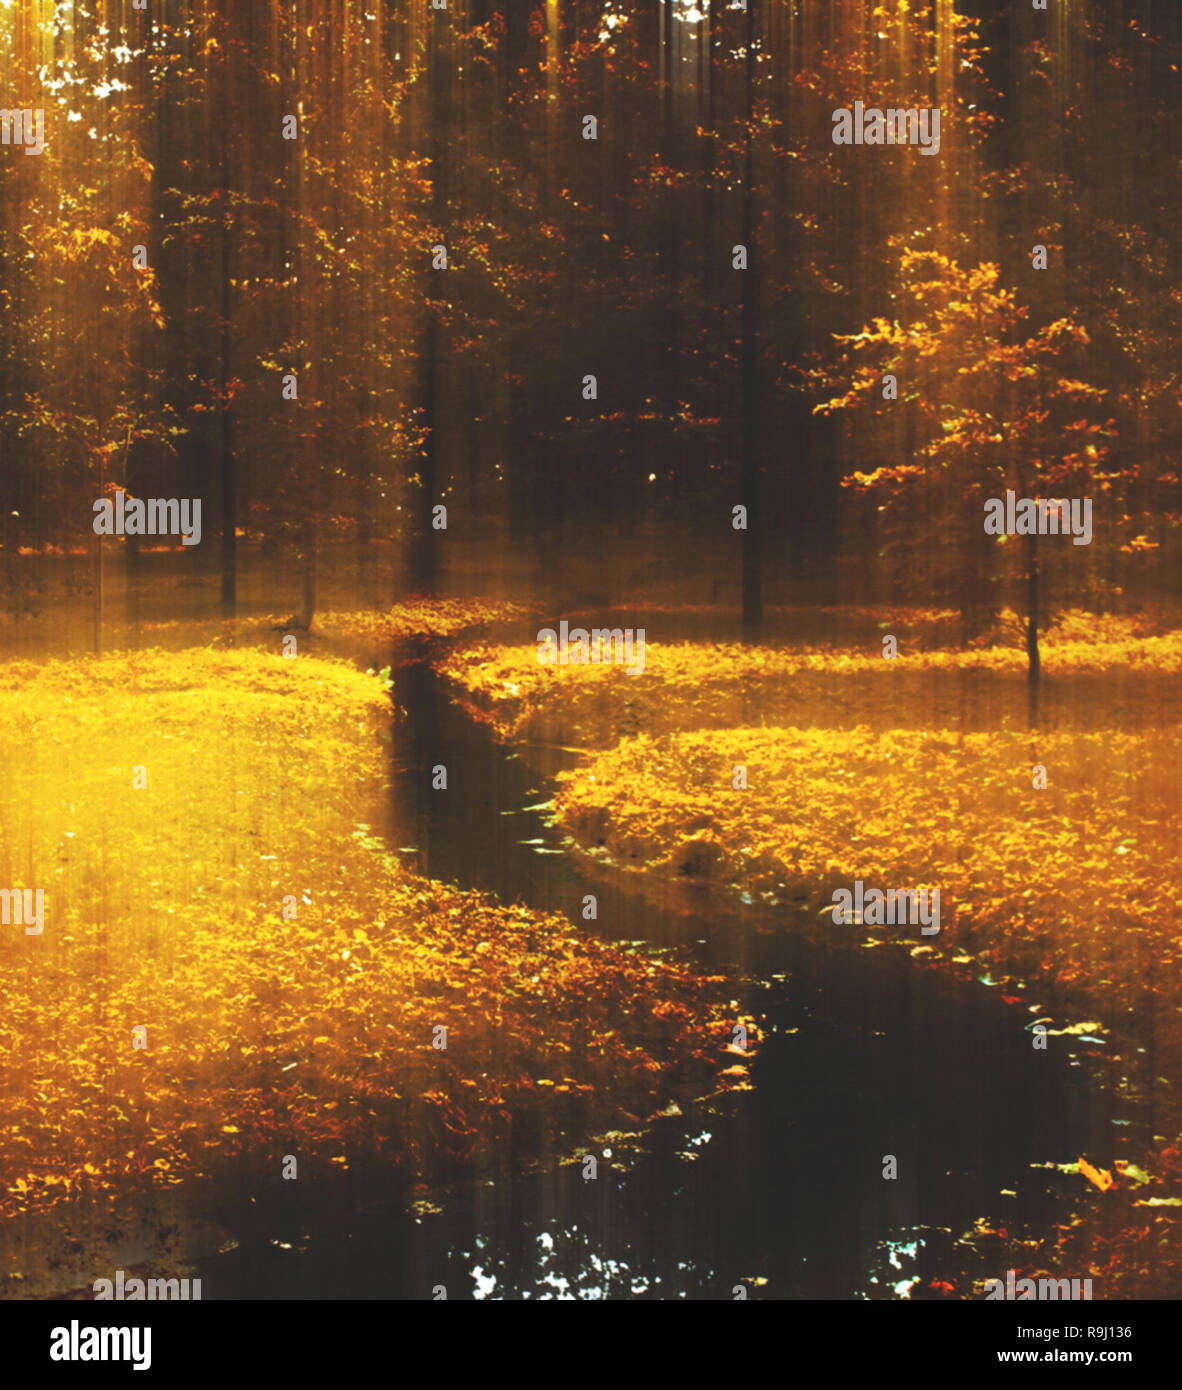 fall scenery, beauty of autumn - nature and environment concept, elegant visuals - Stock Image